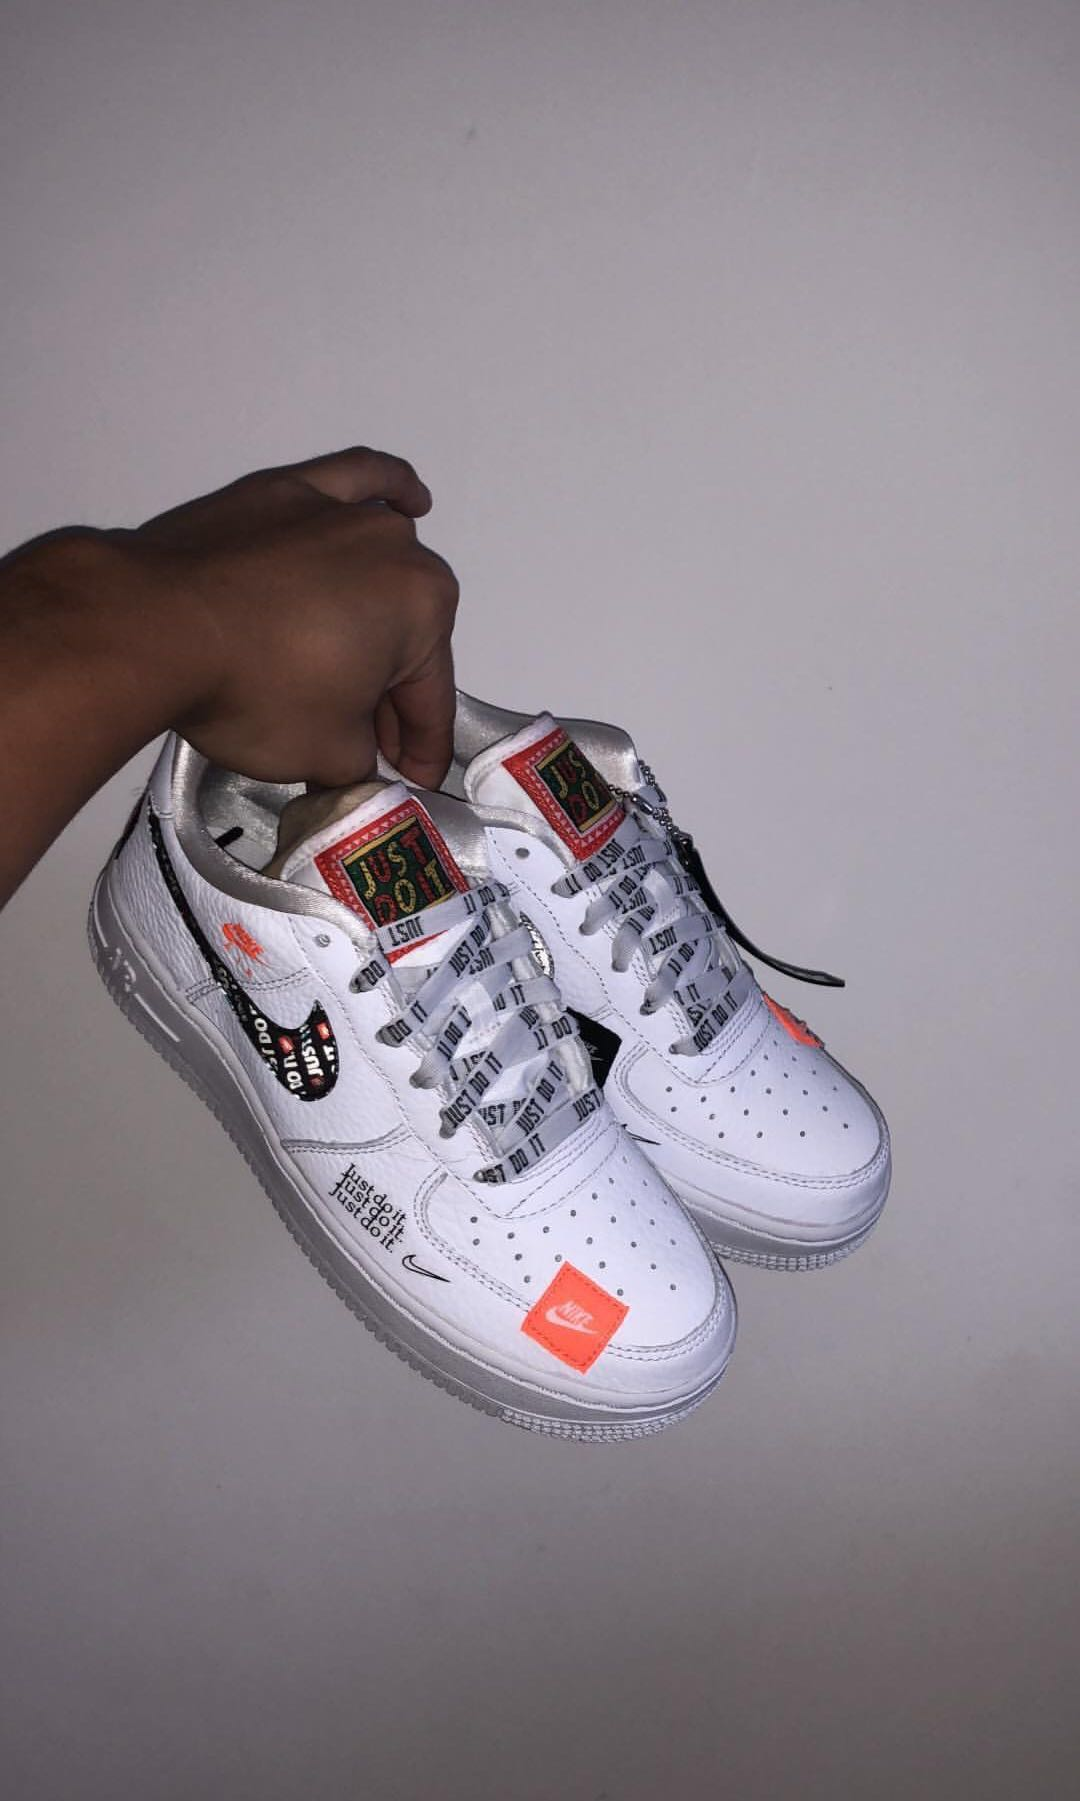 quality design b3dd7 29337 Nike Air Force AF1 JDI Just Do It, Men s Fashion, Footwear, Sneakers on  Carousell